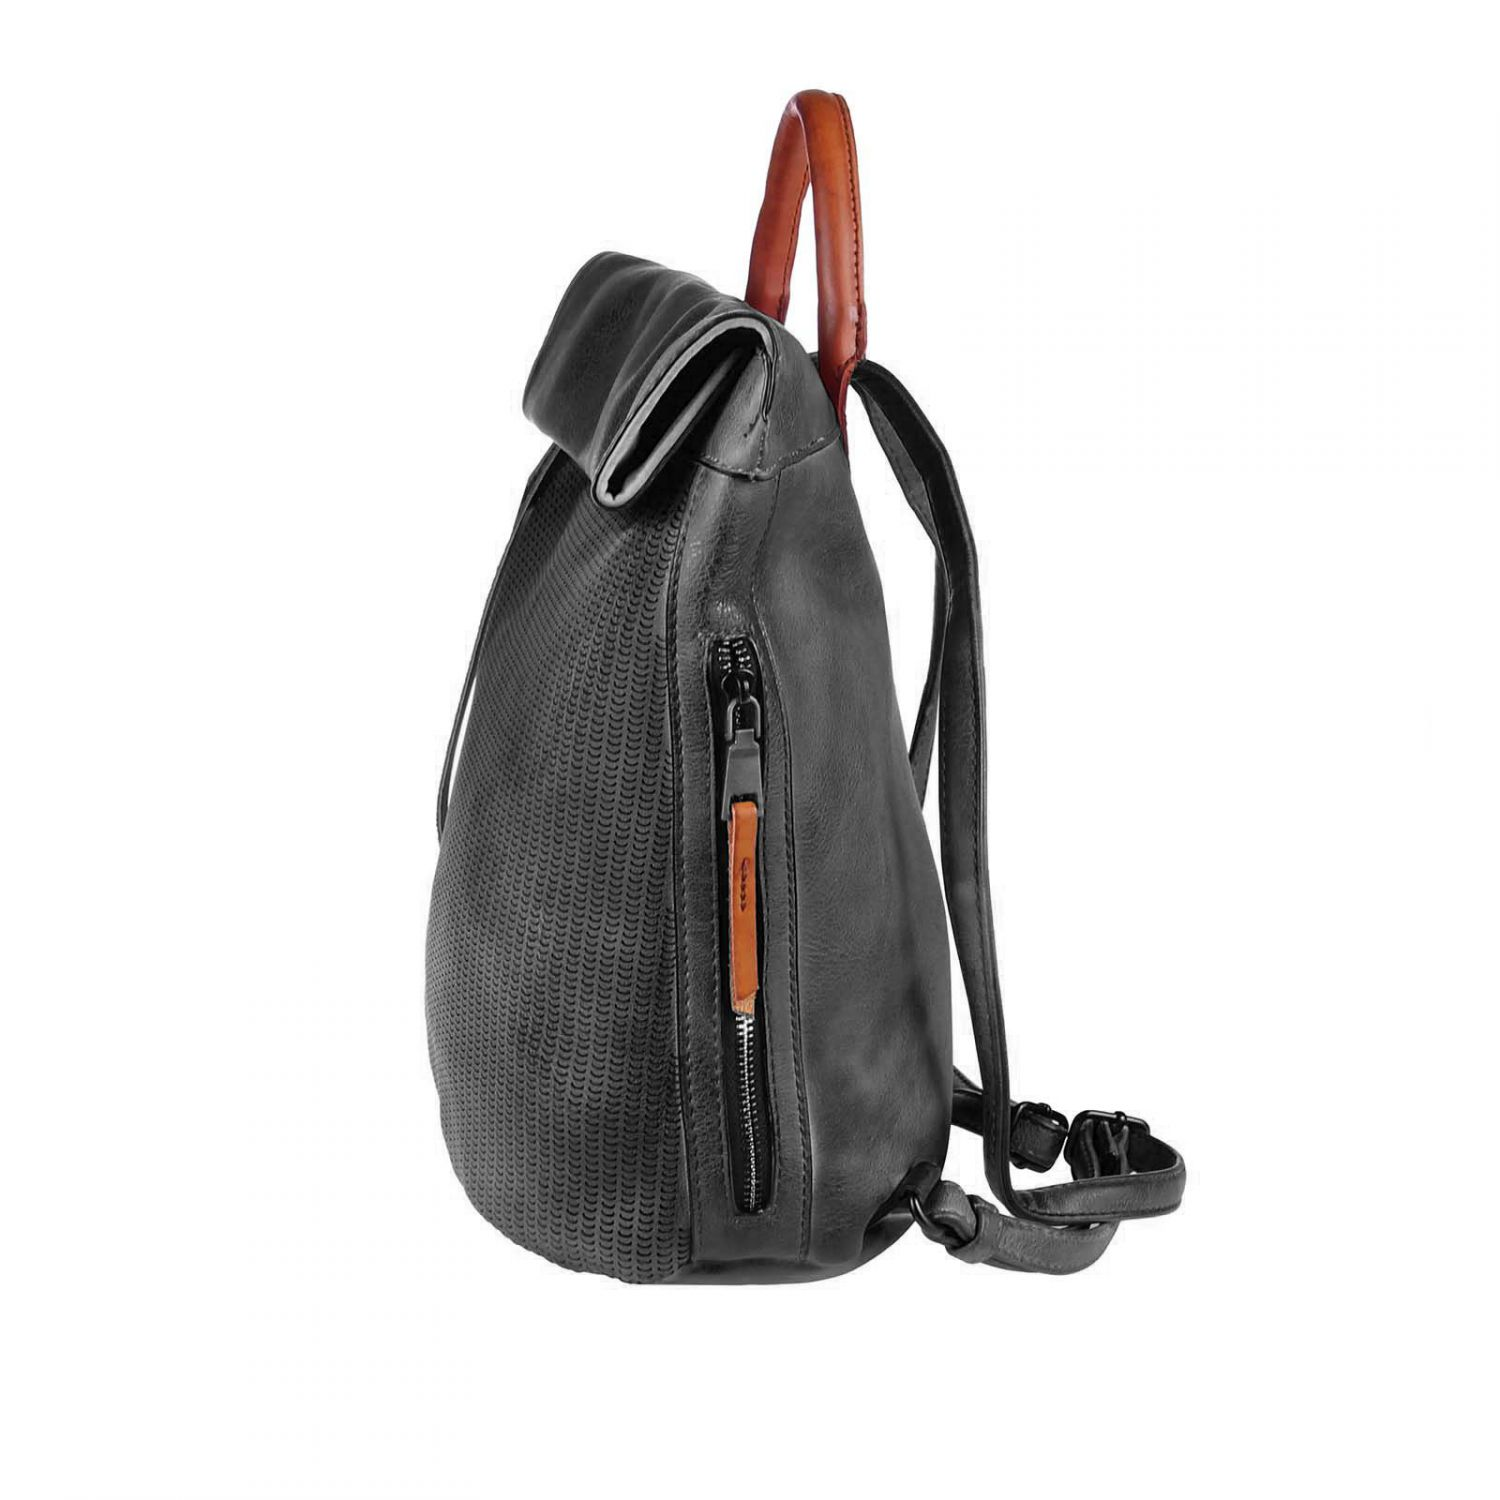 damen leder rucksack tasche city rucksack schultertasche backpack shopper it bag ebay. Black Bedroom Furniture Sets. Home Design Ideas